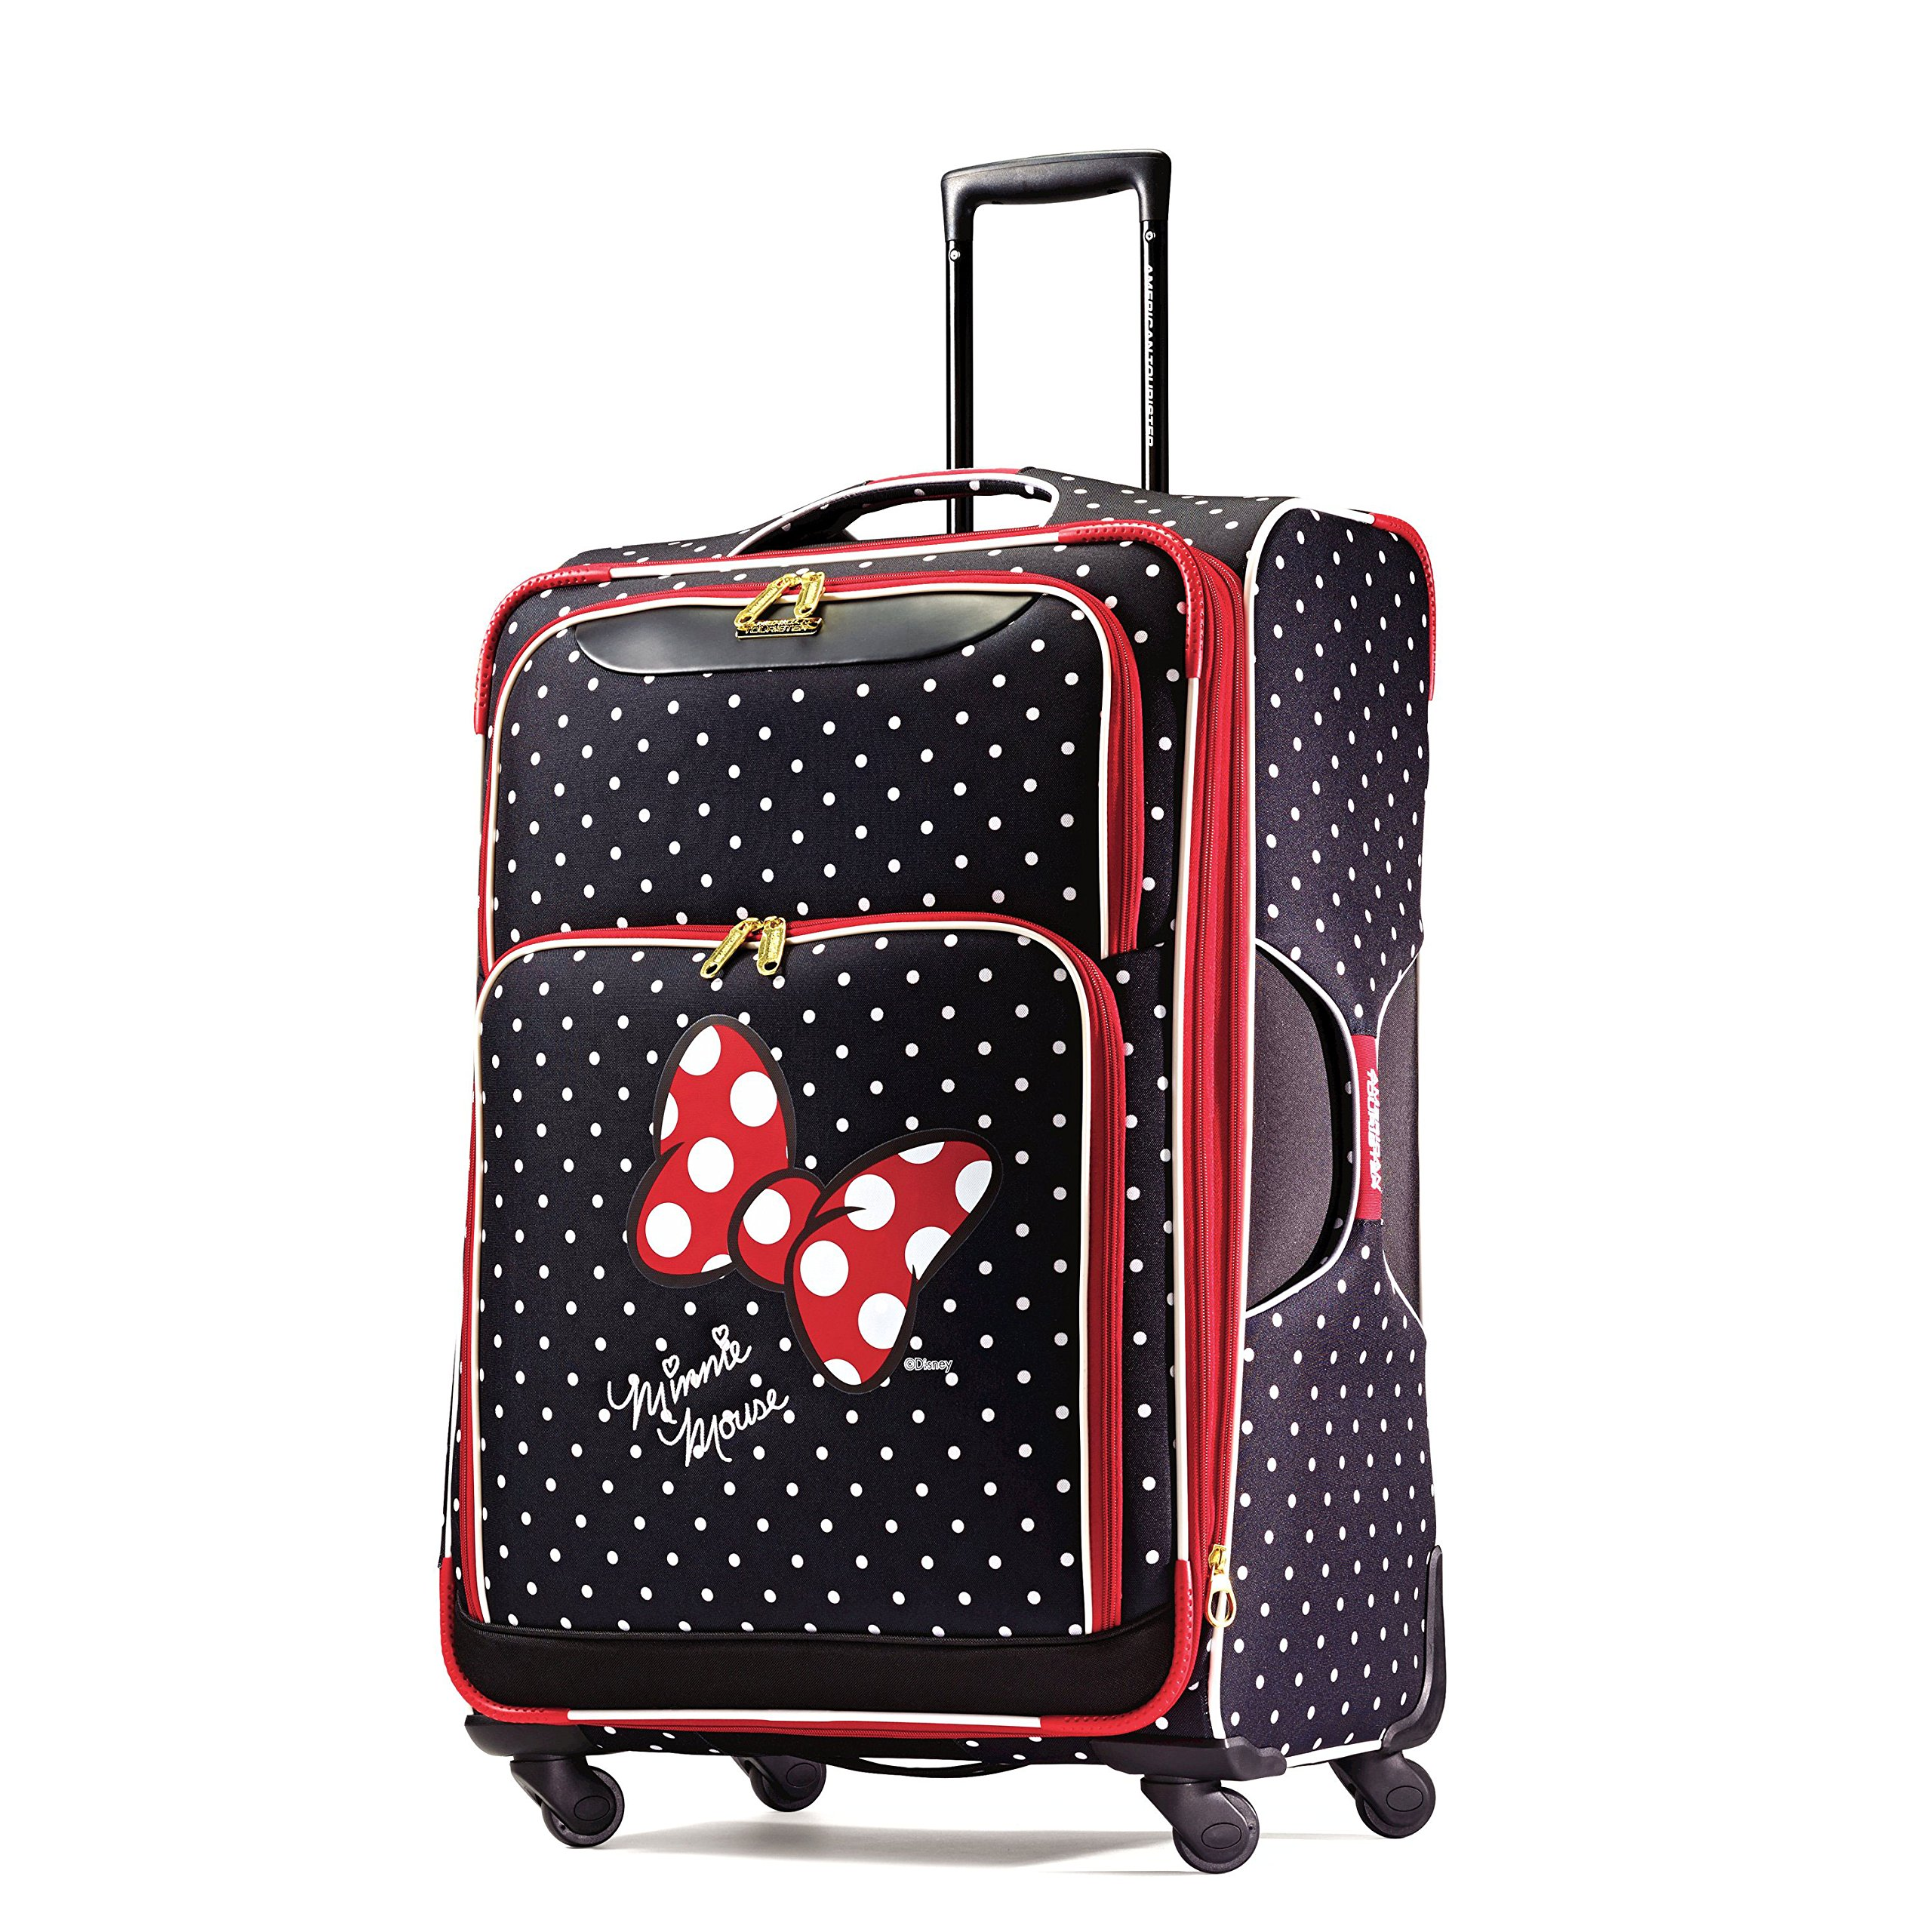 American Tourister 28 Inch, Minnie Mouse Red Bow by American Tourister